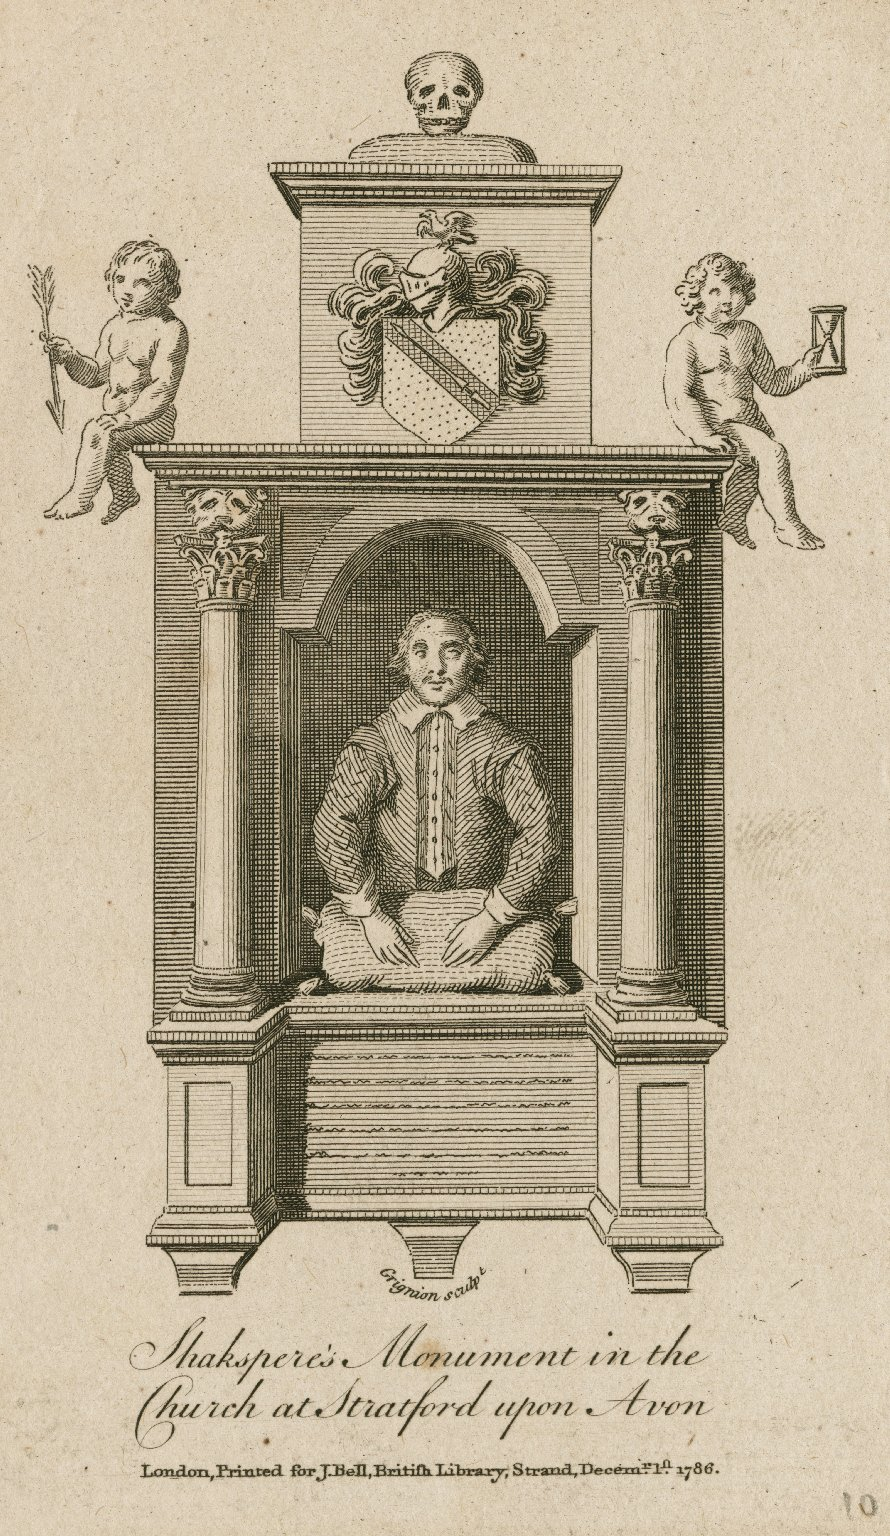 Shakspere's monument in the church at Stratford-upon-Avon [graphic] / Grignion sculpt.